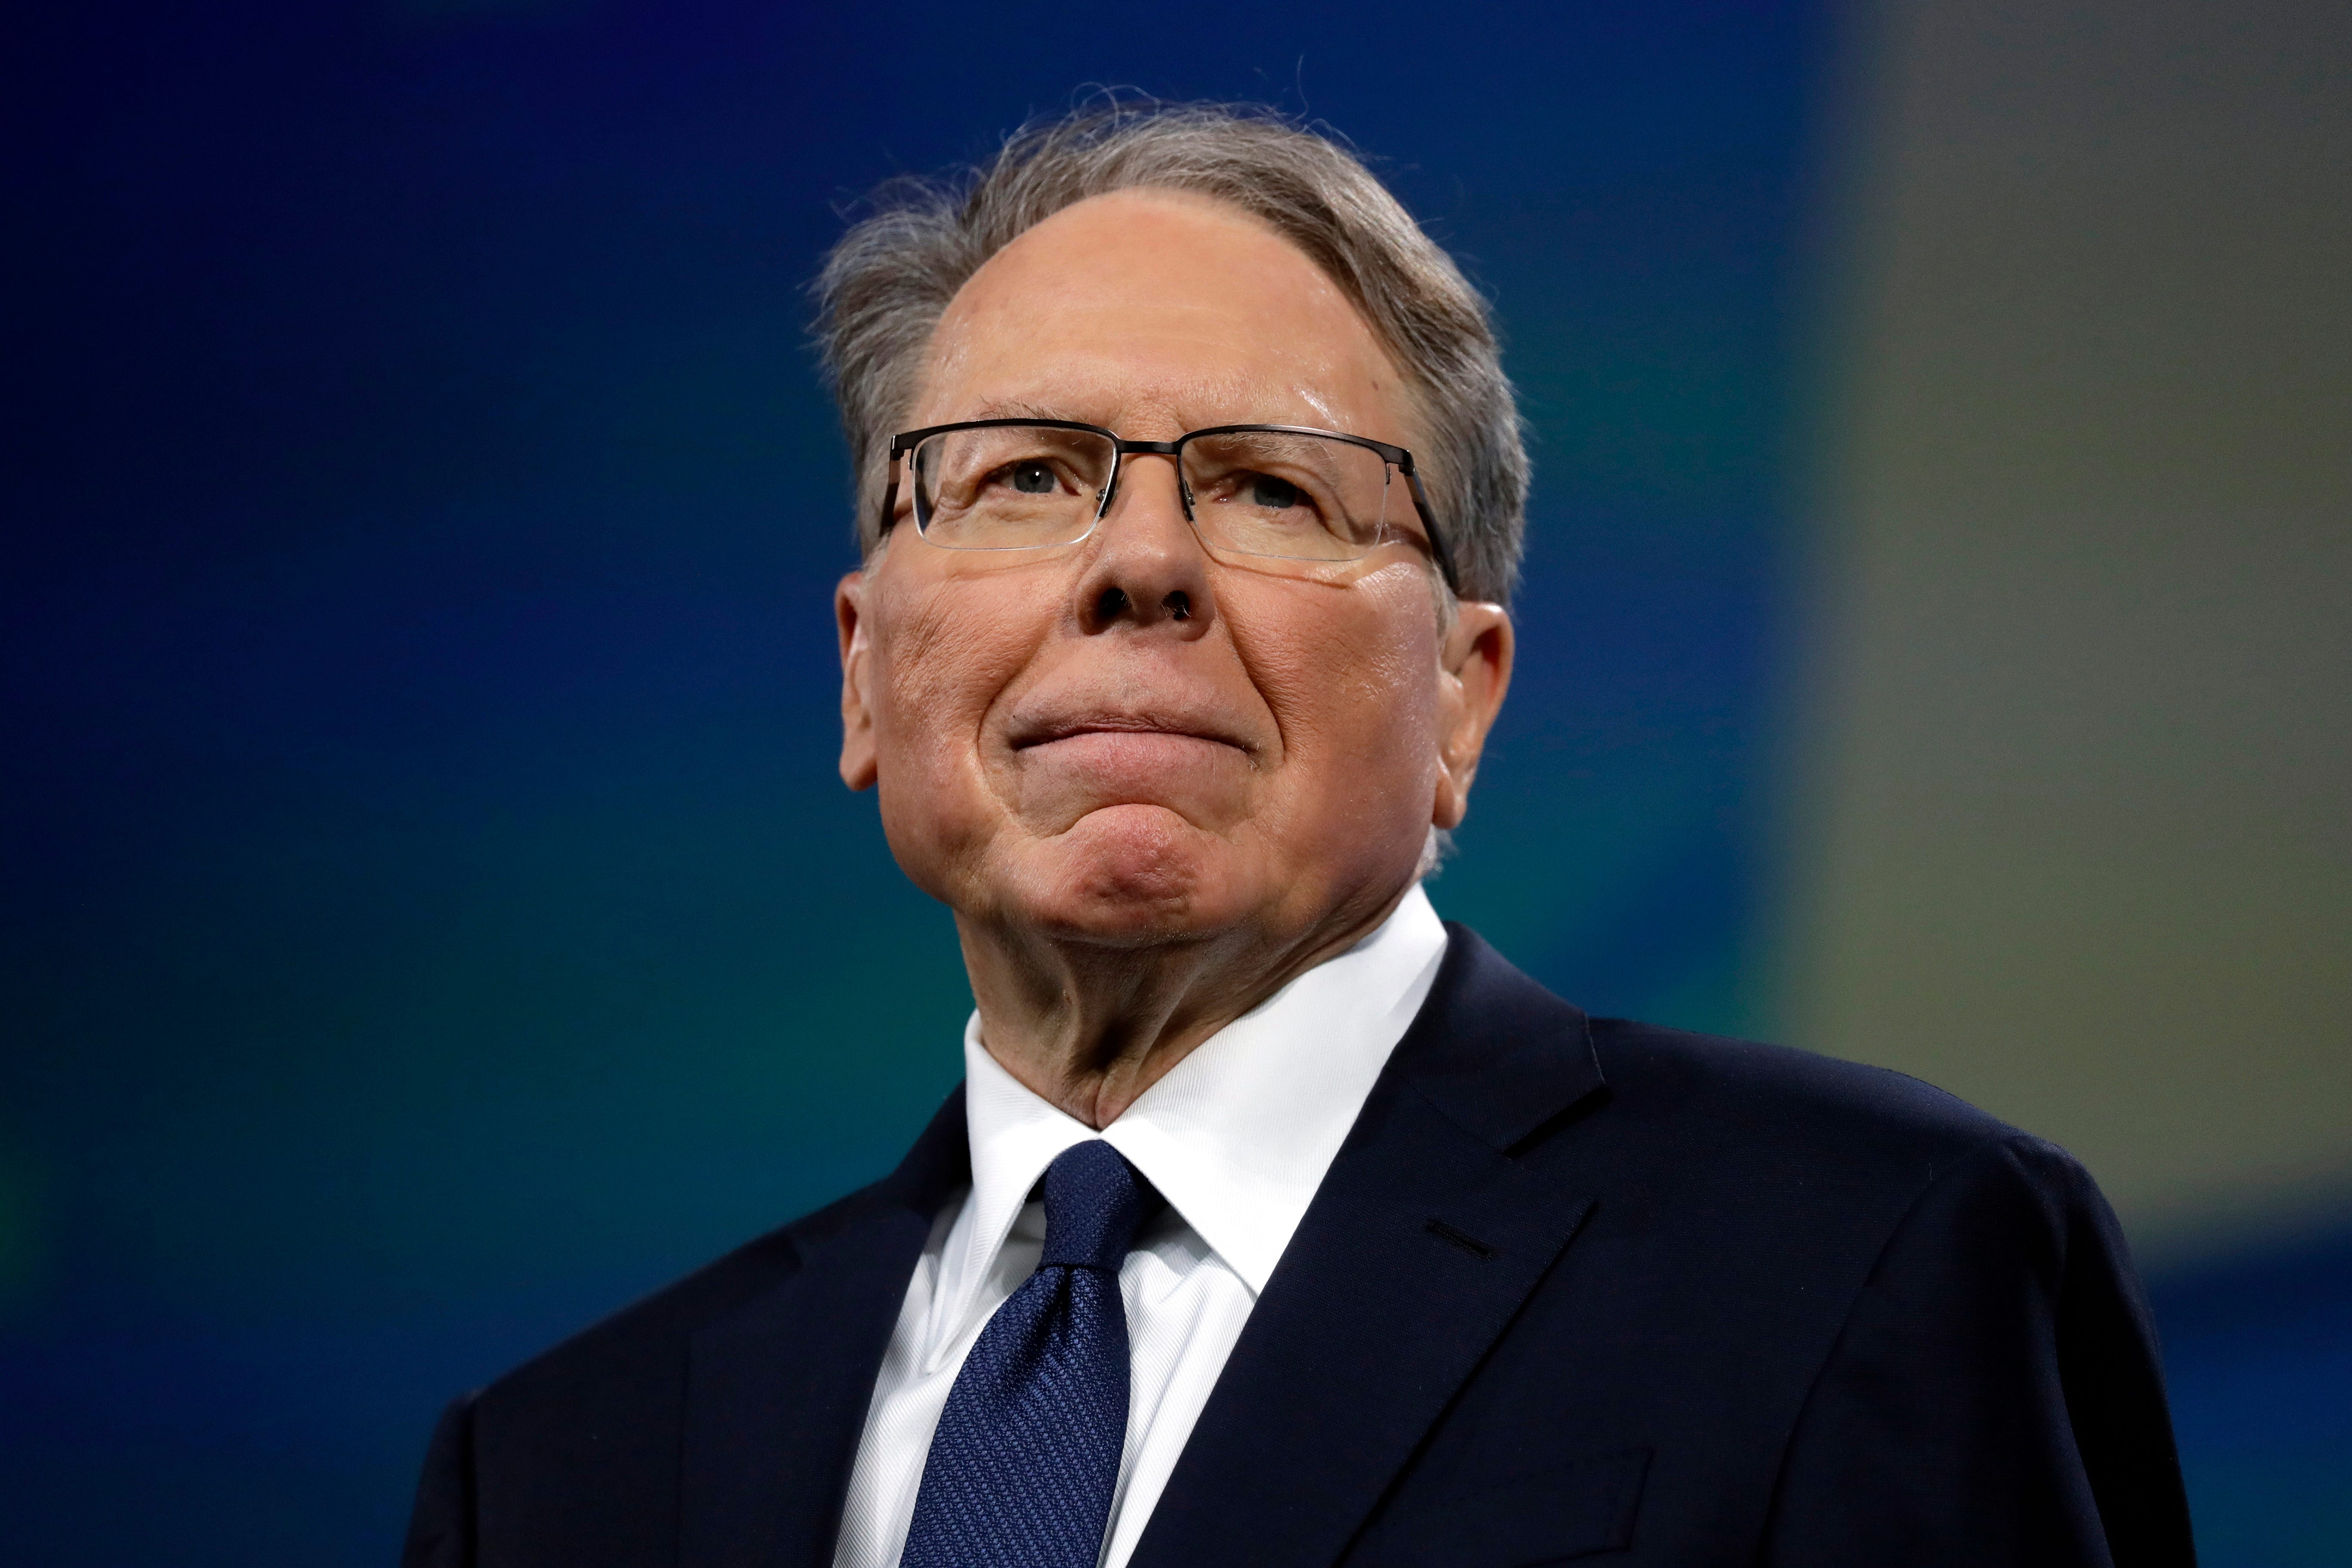 NRA bankruptcy dismissed: National Rifle Association's Chapter 11 case rejected as not 'in good faith'